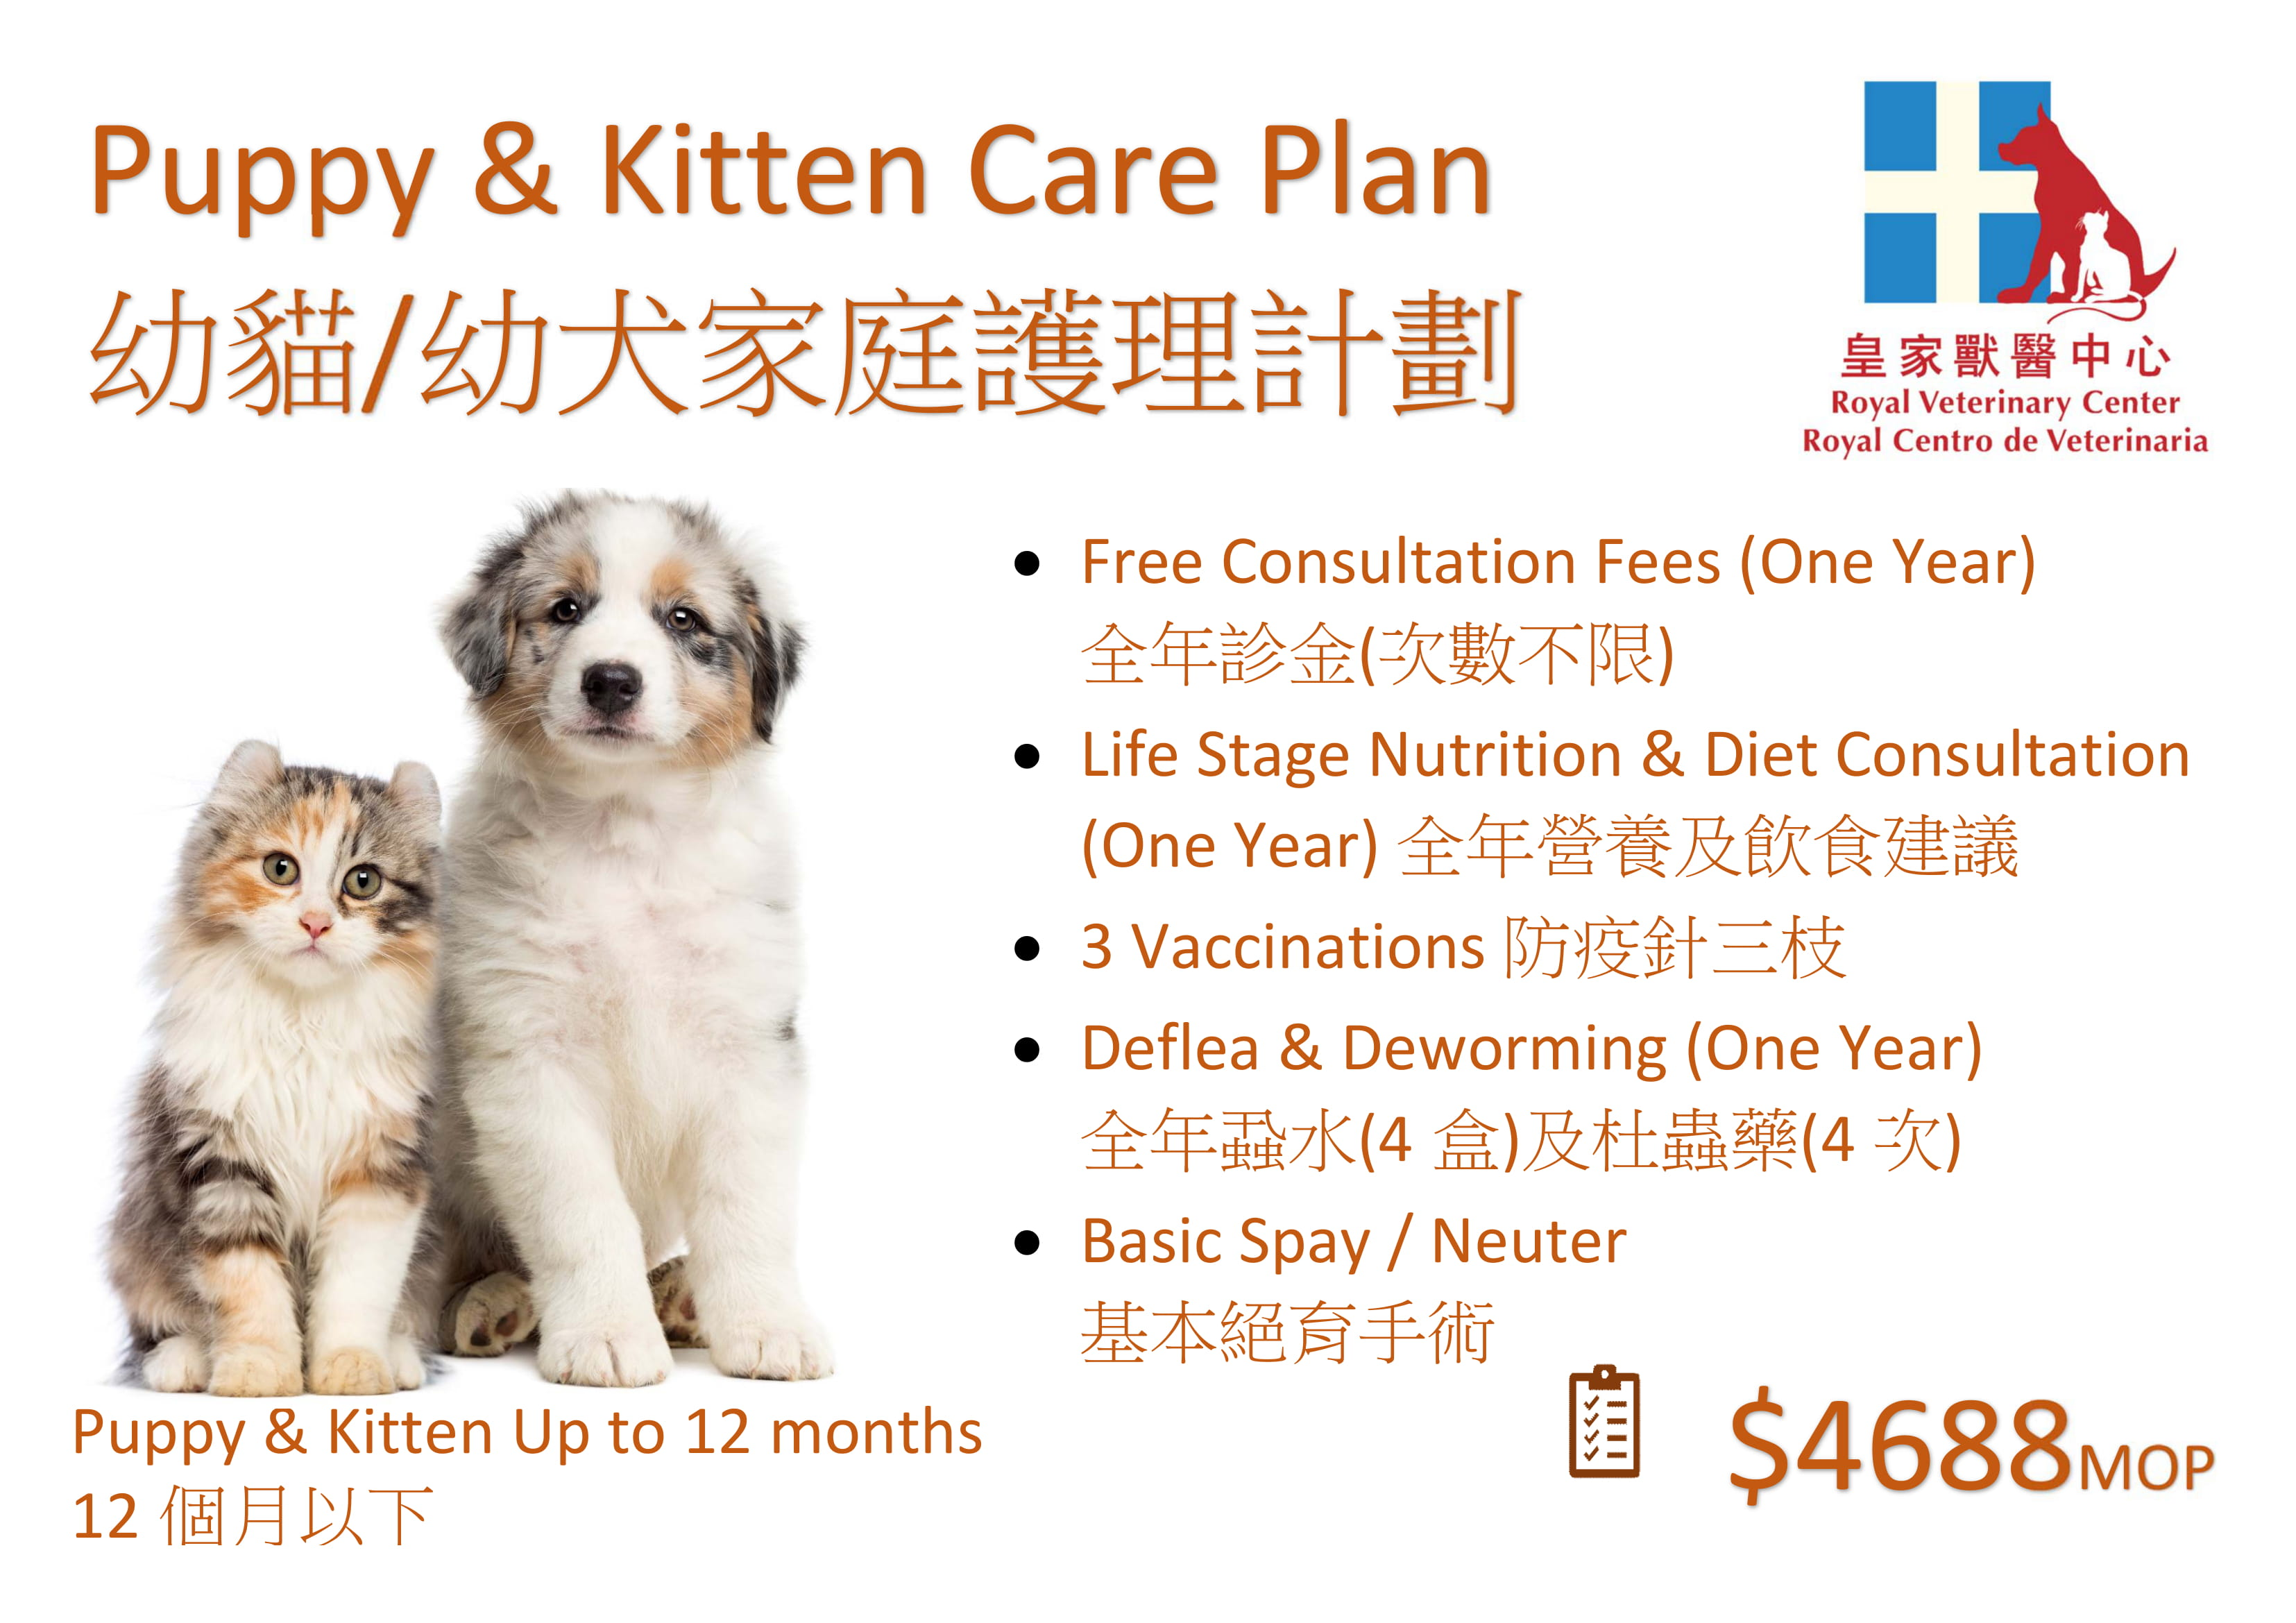 Puppy & Kitten Care Plan-1